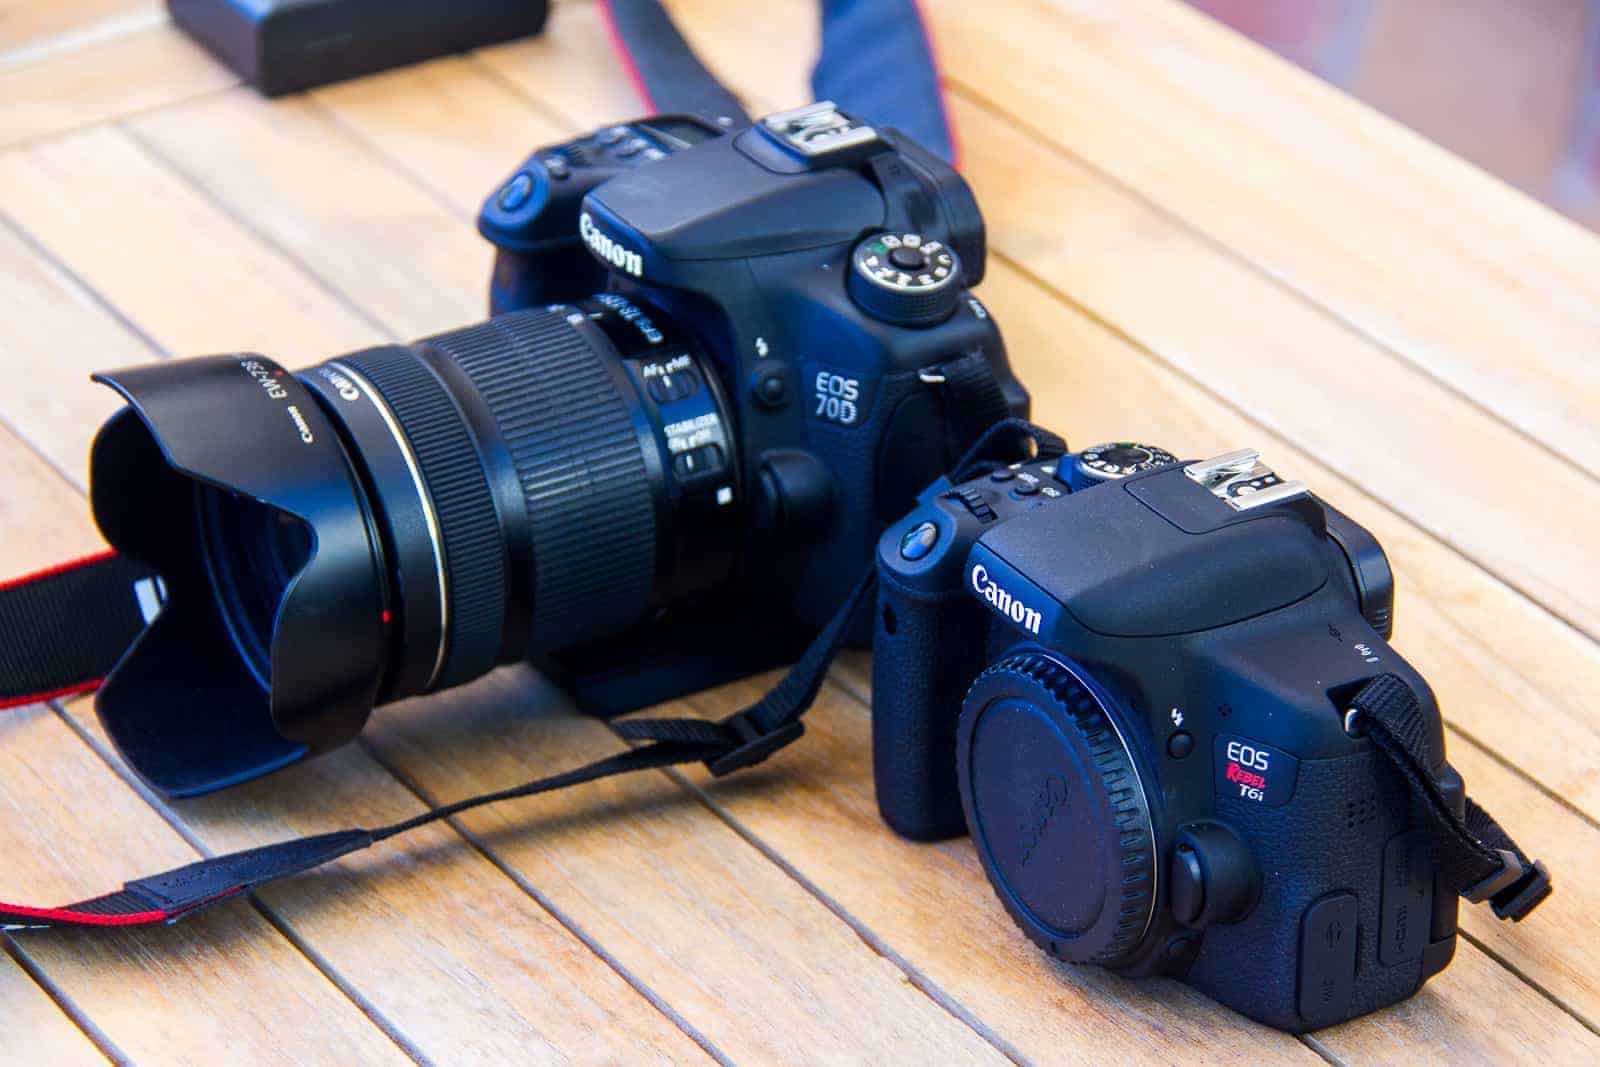 How Good Is The Canon Eos Rebel T6i For Shooting Video